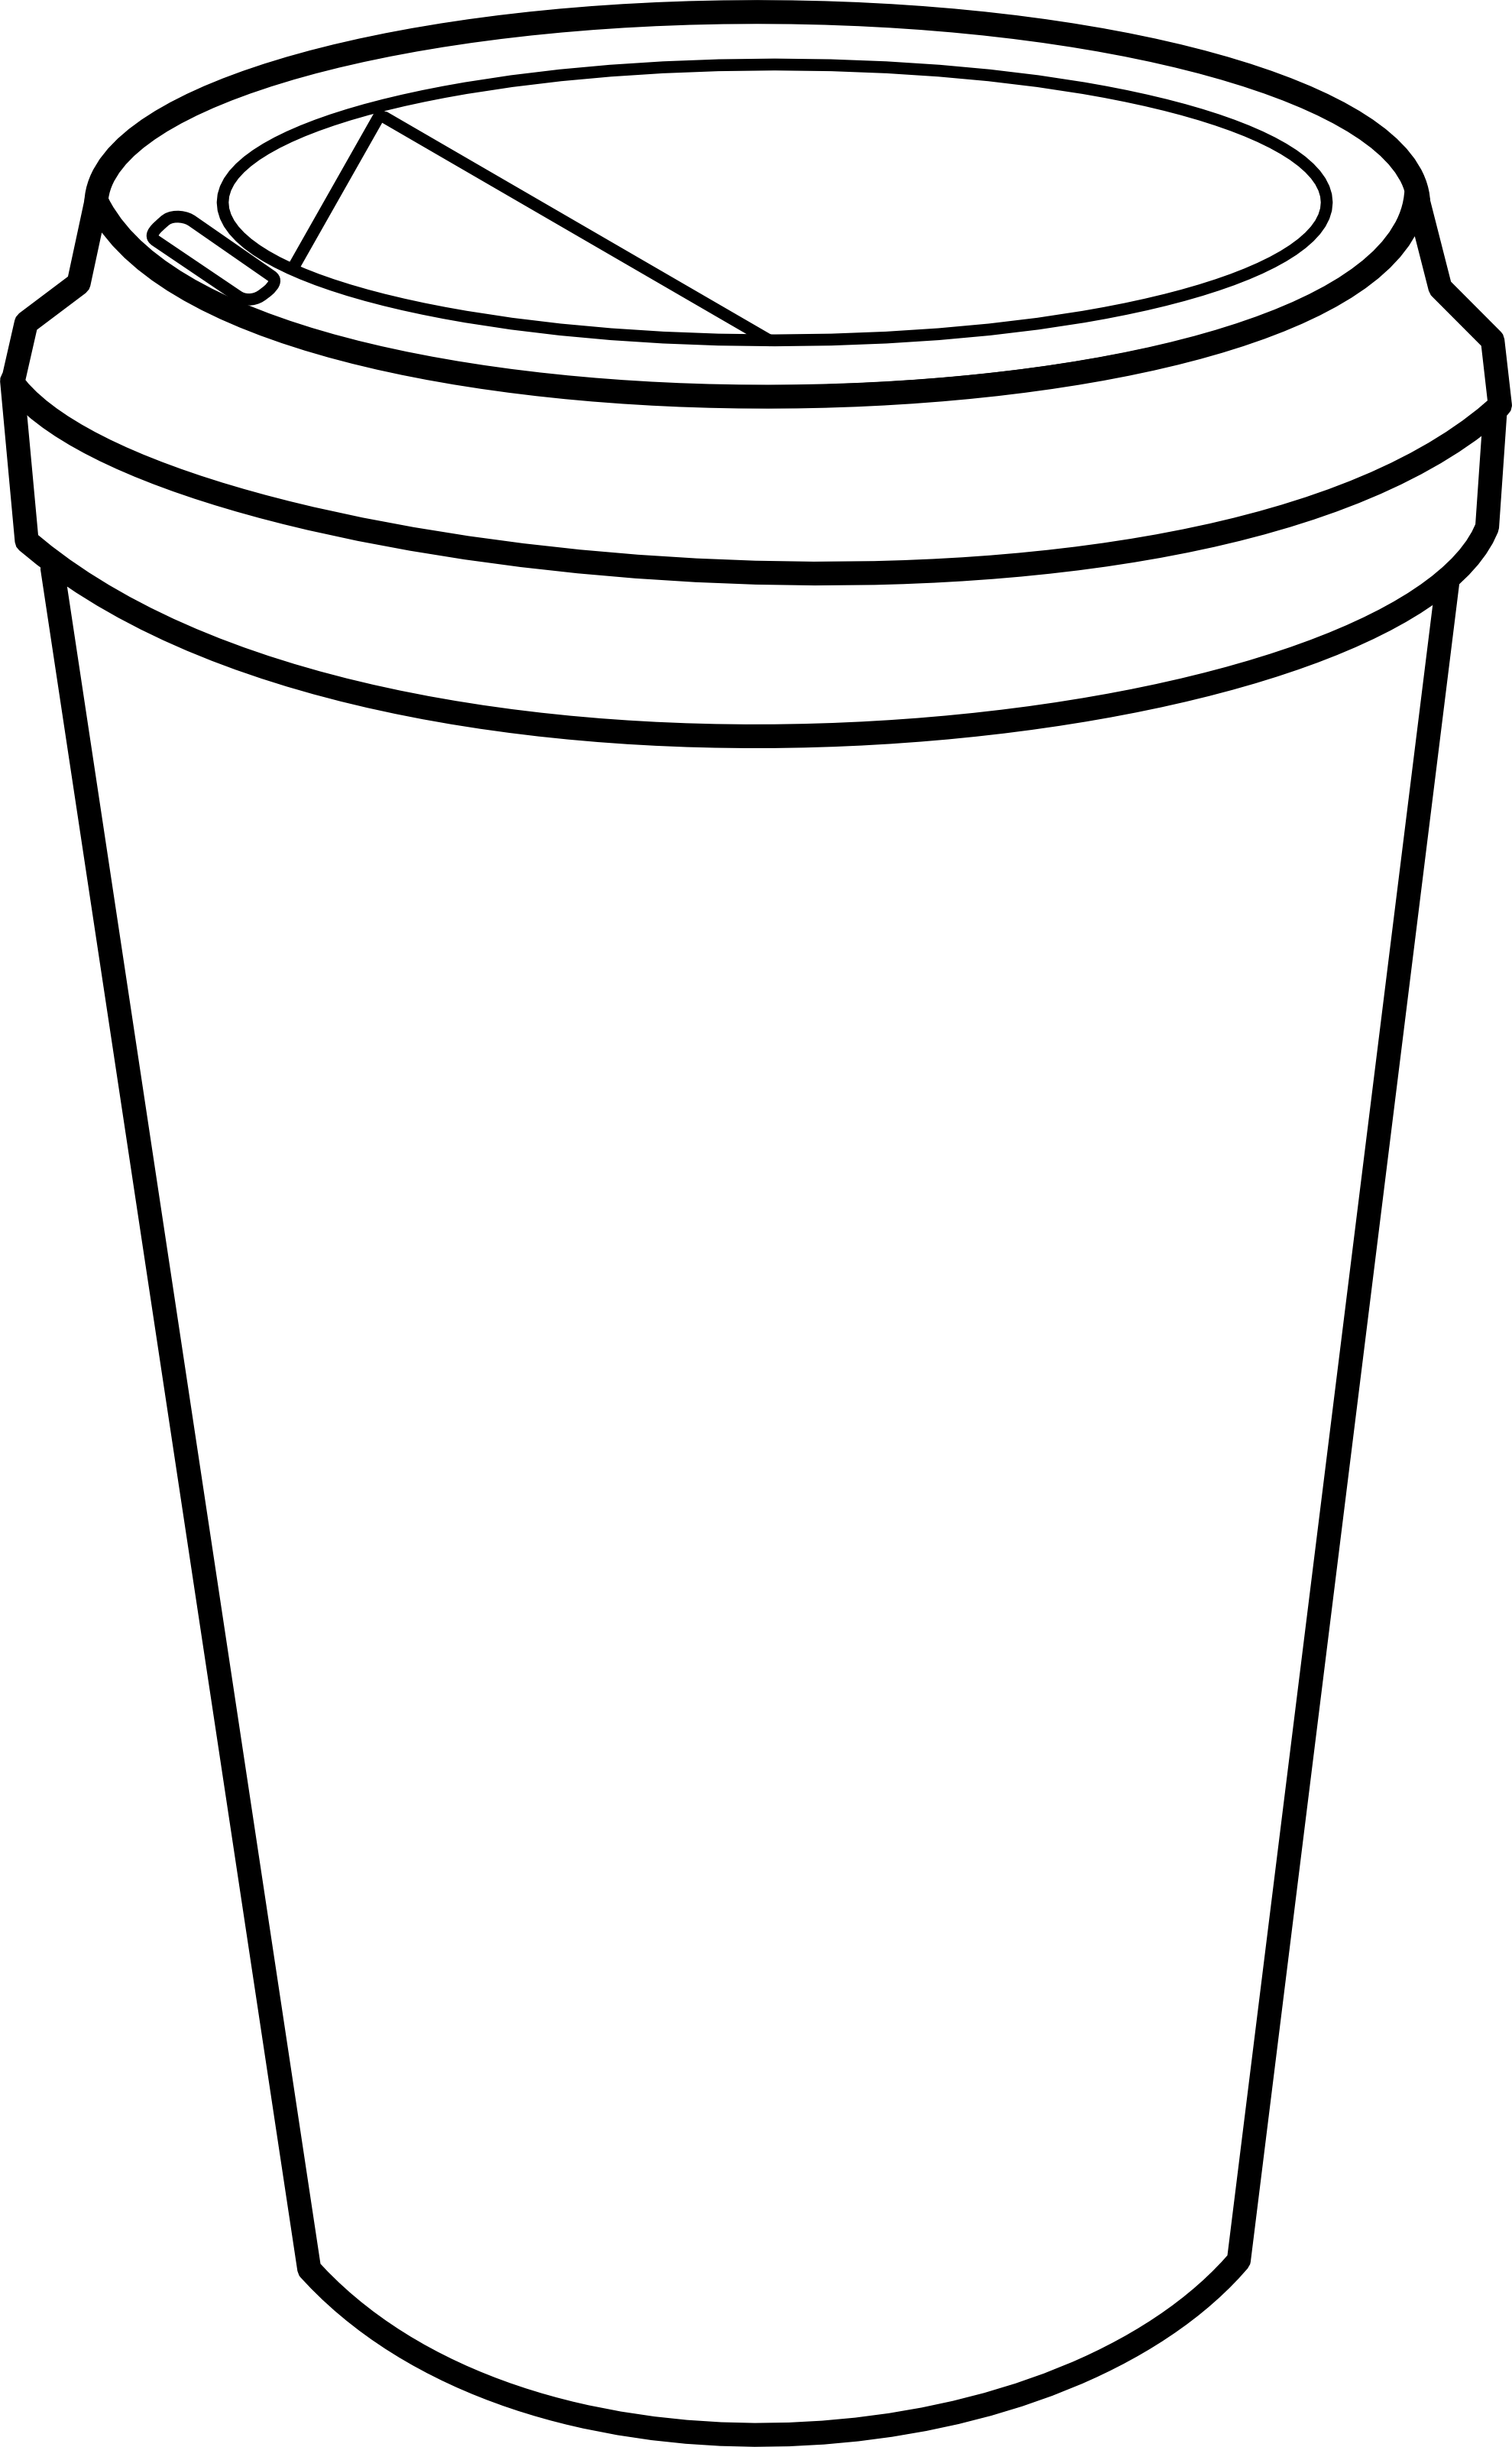 Plastic Cup Clipart Black And White Clipart Panda